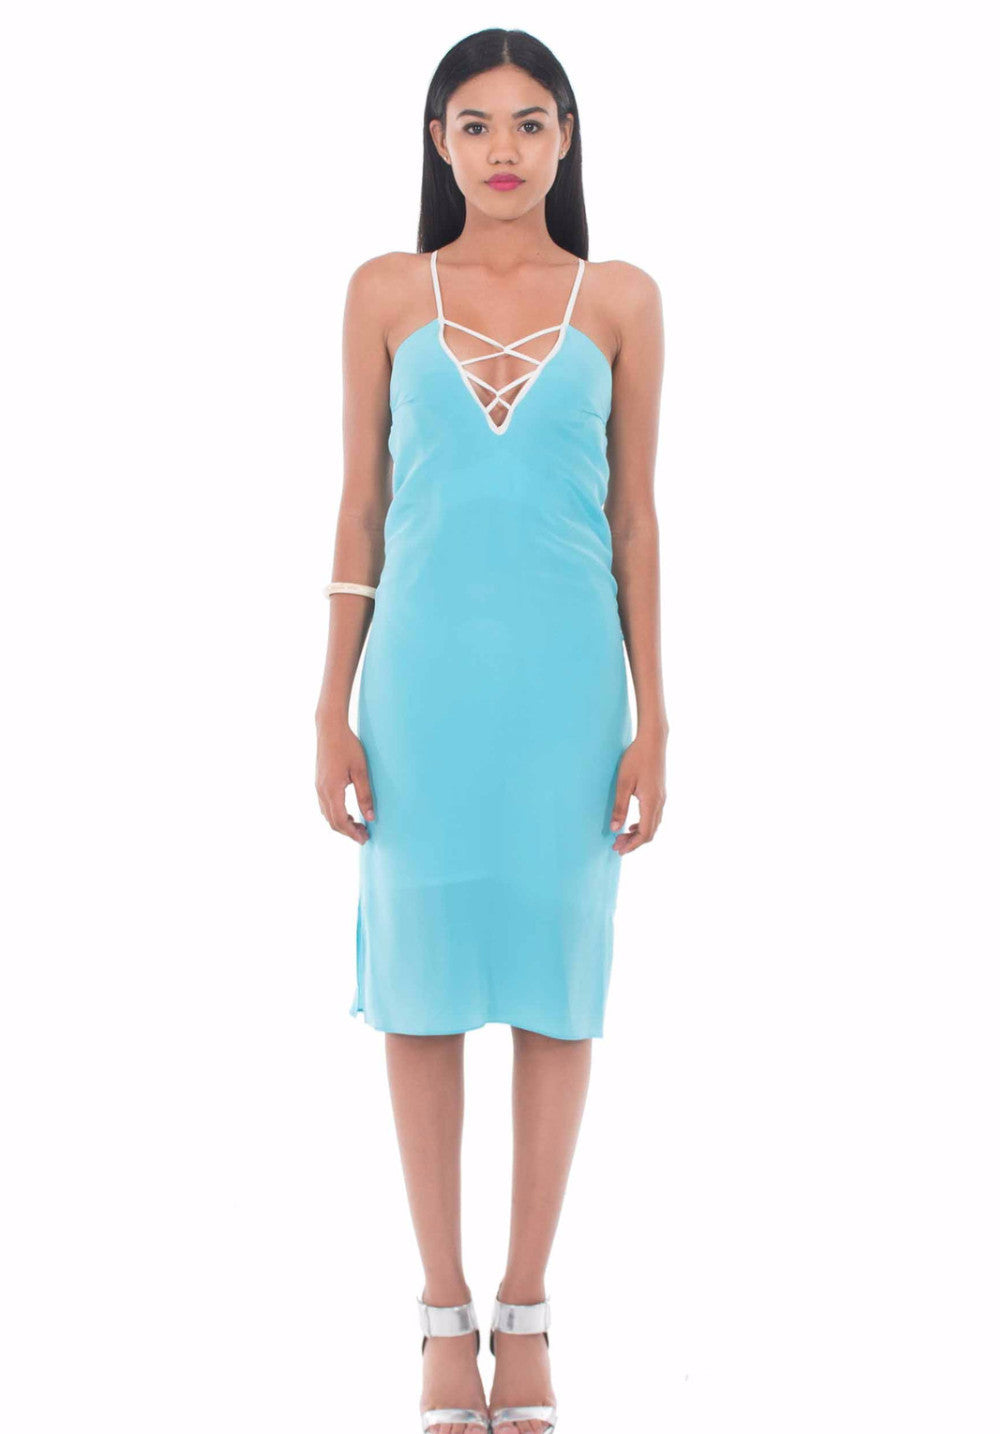 Entwined Midi Slip Dress by Isy B. Design - Front View on Model